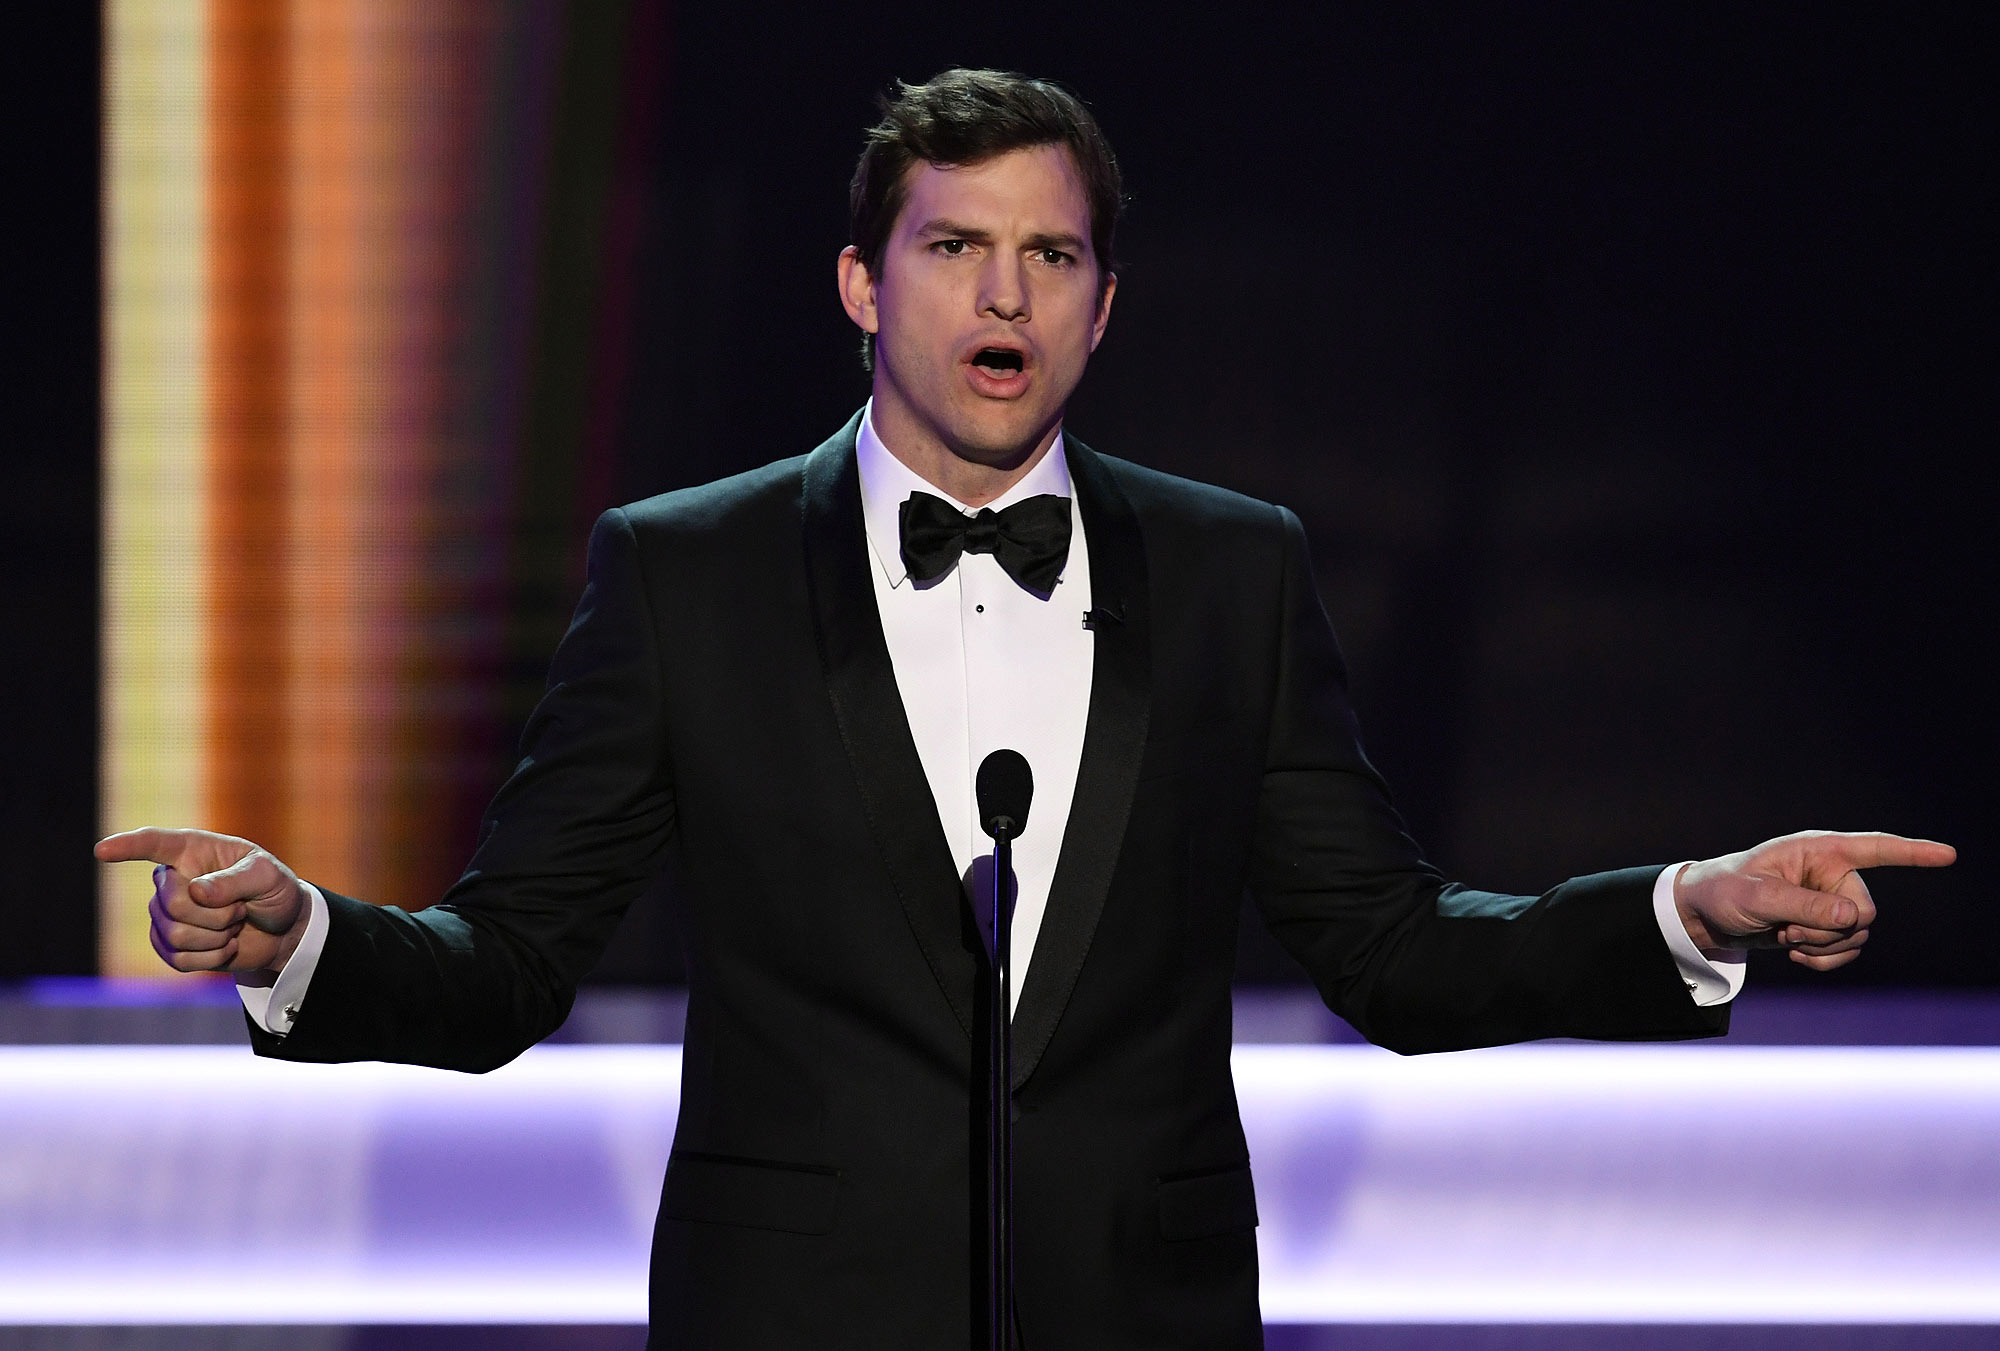 LOS ANGELES, CA - JANUARY 29: Actor Ashton Kutcher speaks onstage during The 23rd Annual Screen Actors Guild Awards at The Shrine Auditorium on January 29, 2017 in Los Angeles, California. 26592_014 (Photo by Kevin Winter/Getty Images )